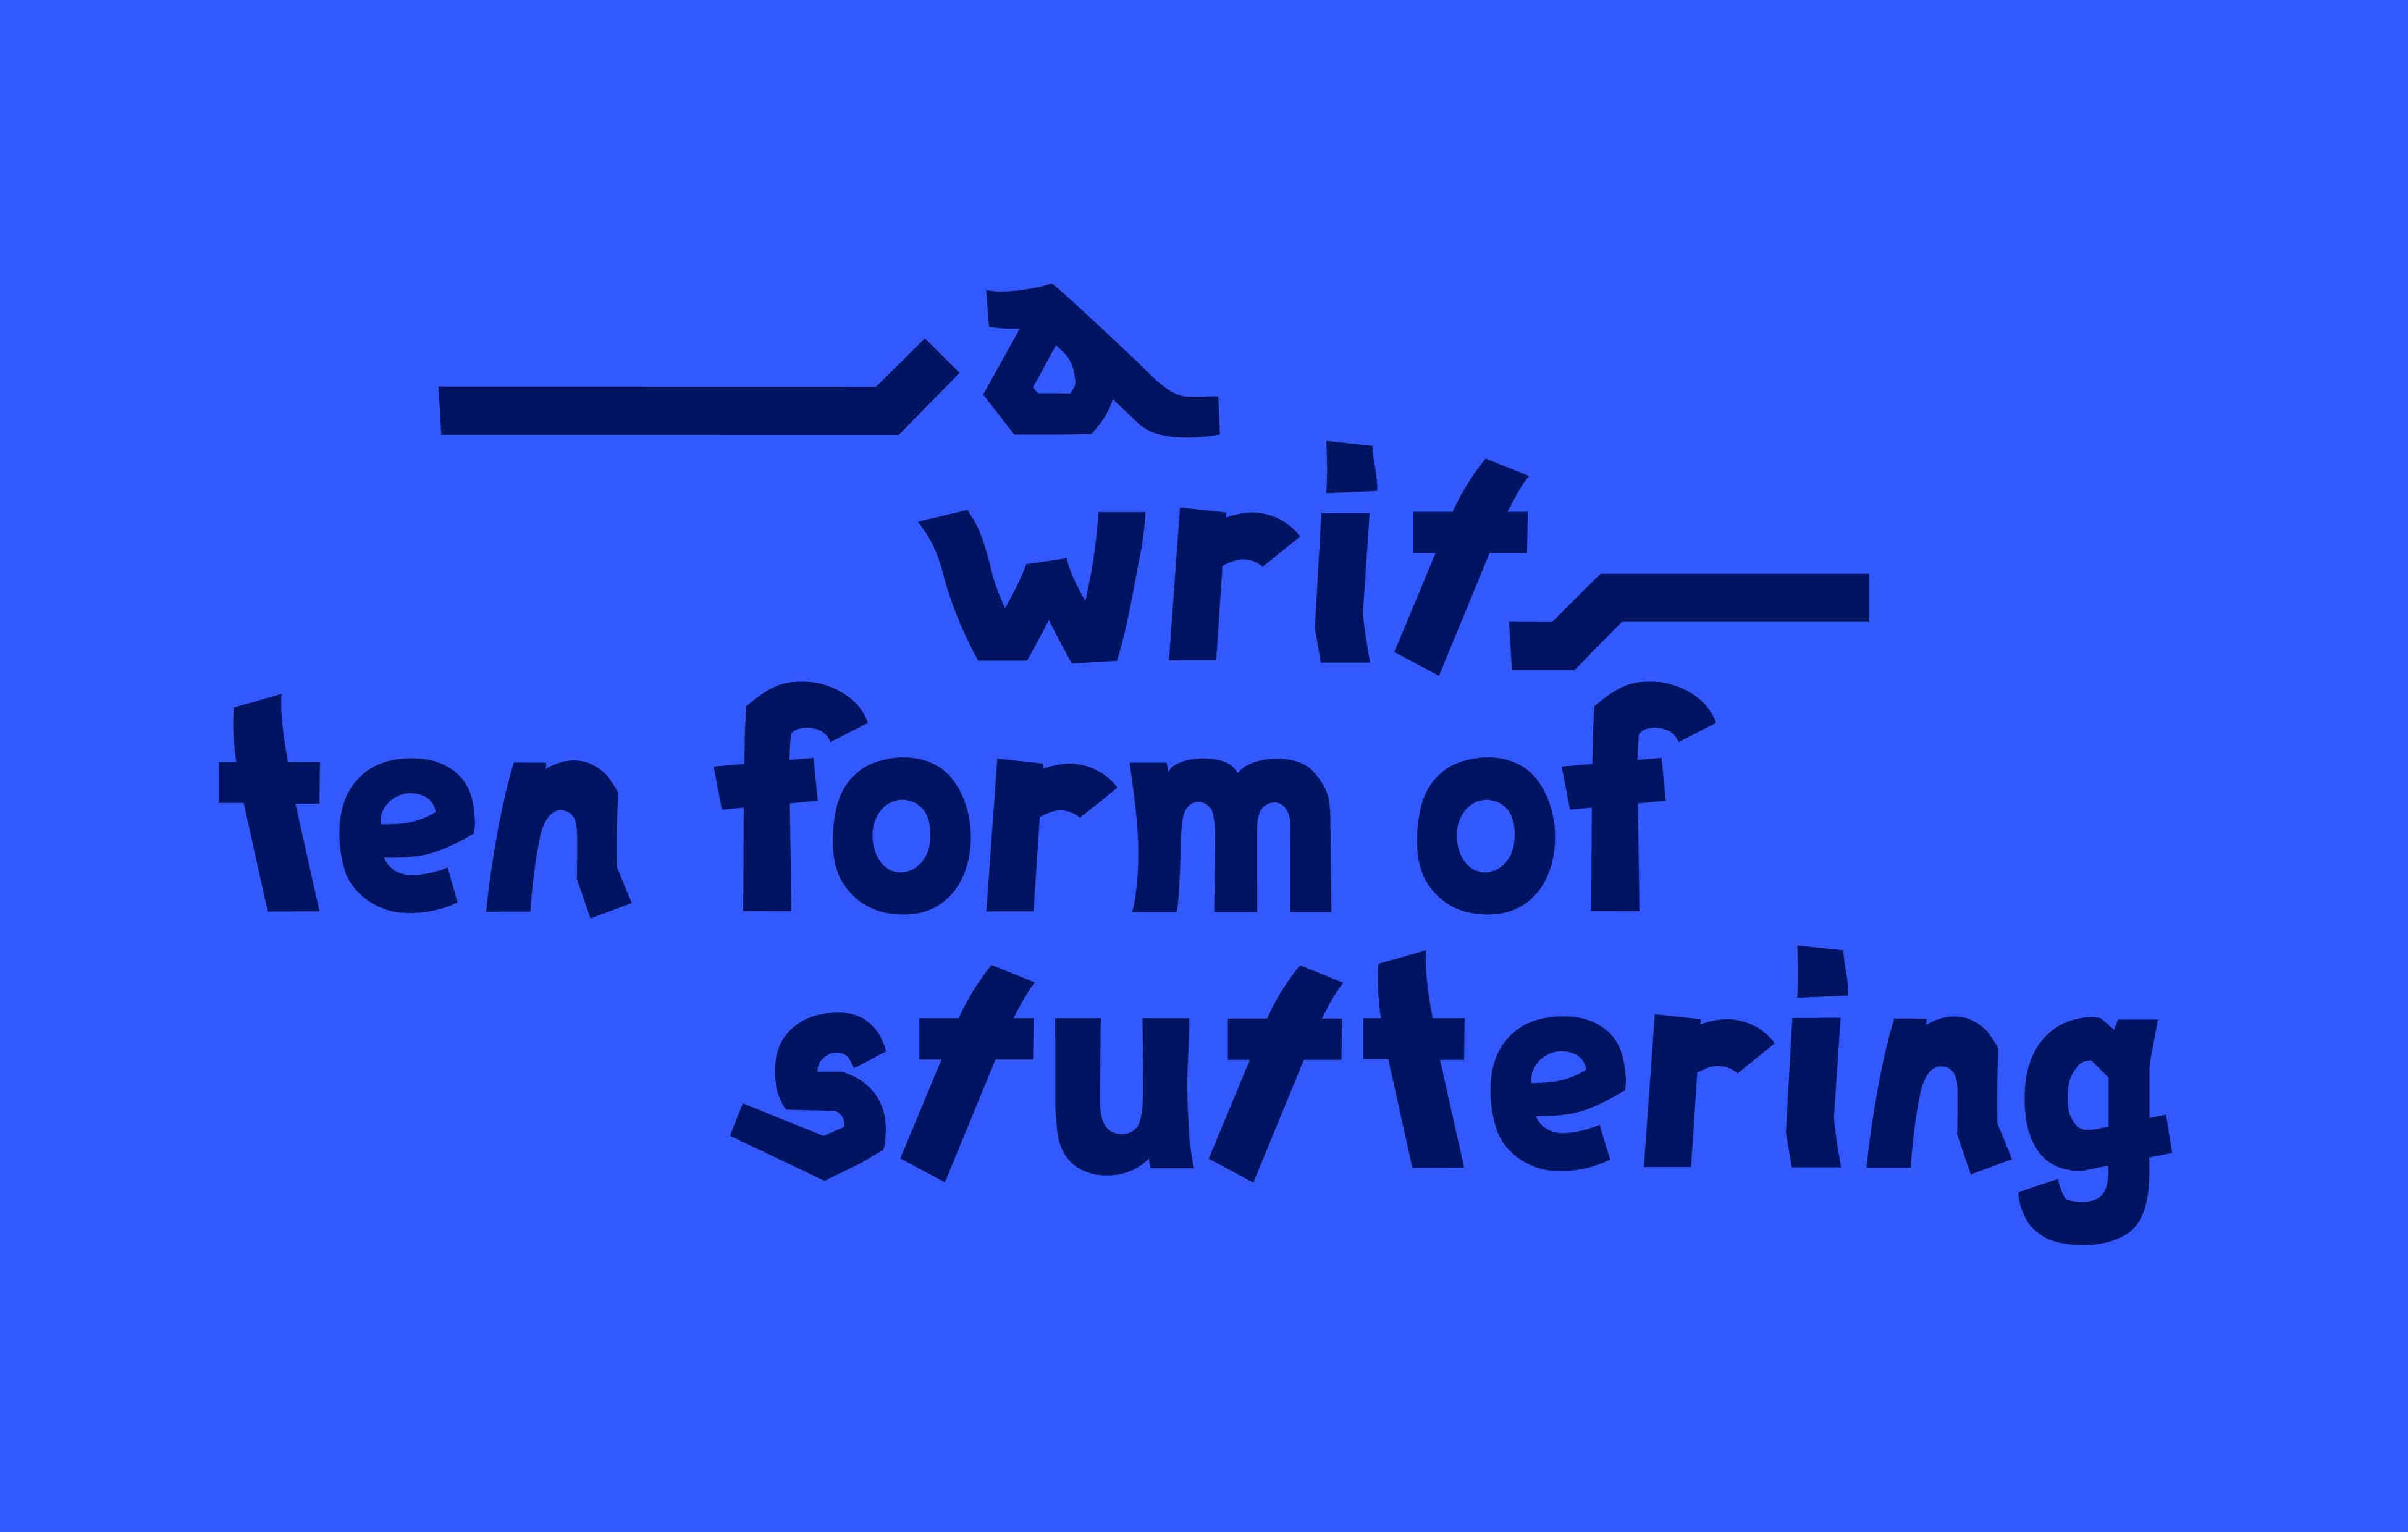 text: a written form of stuttering